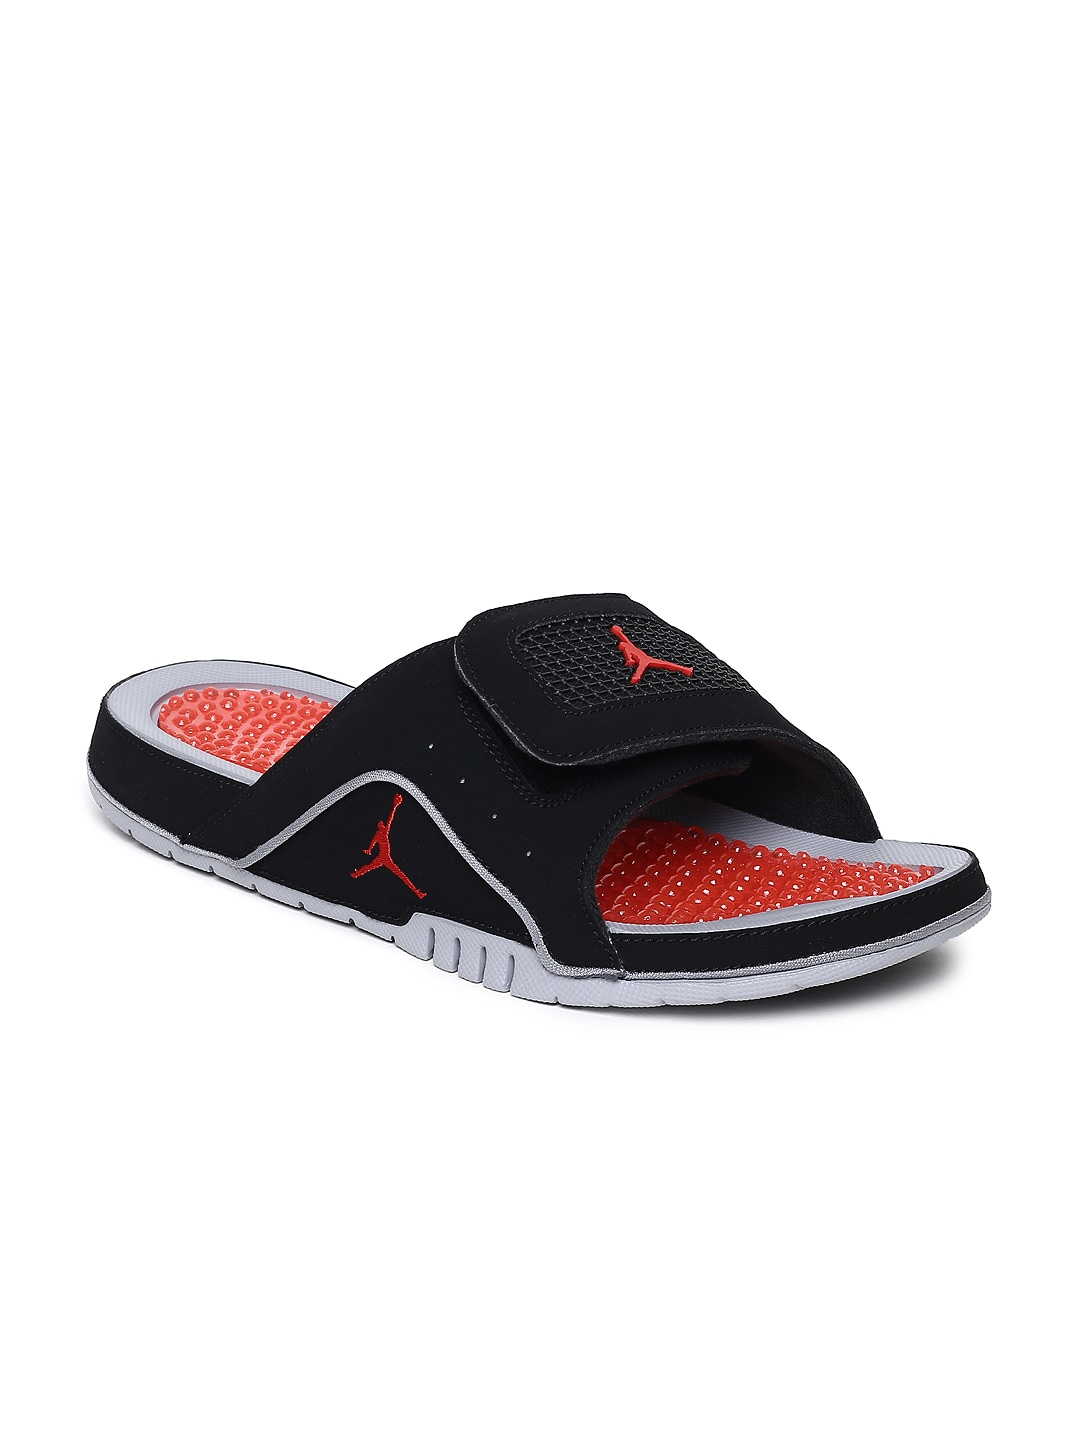 5e21abfa214 Flip Flops for Men - Buy Slippers   Flip Flops for Men Online